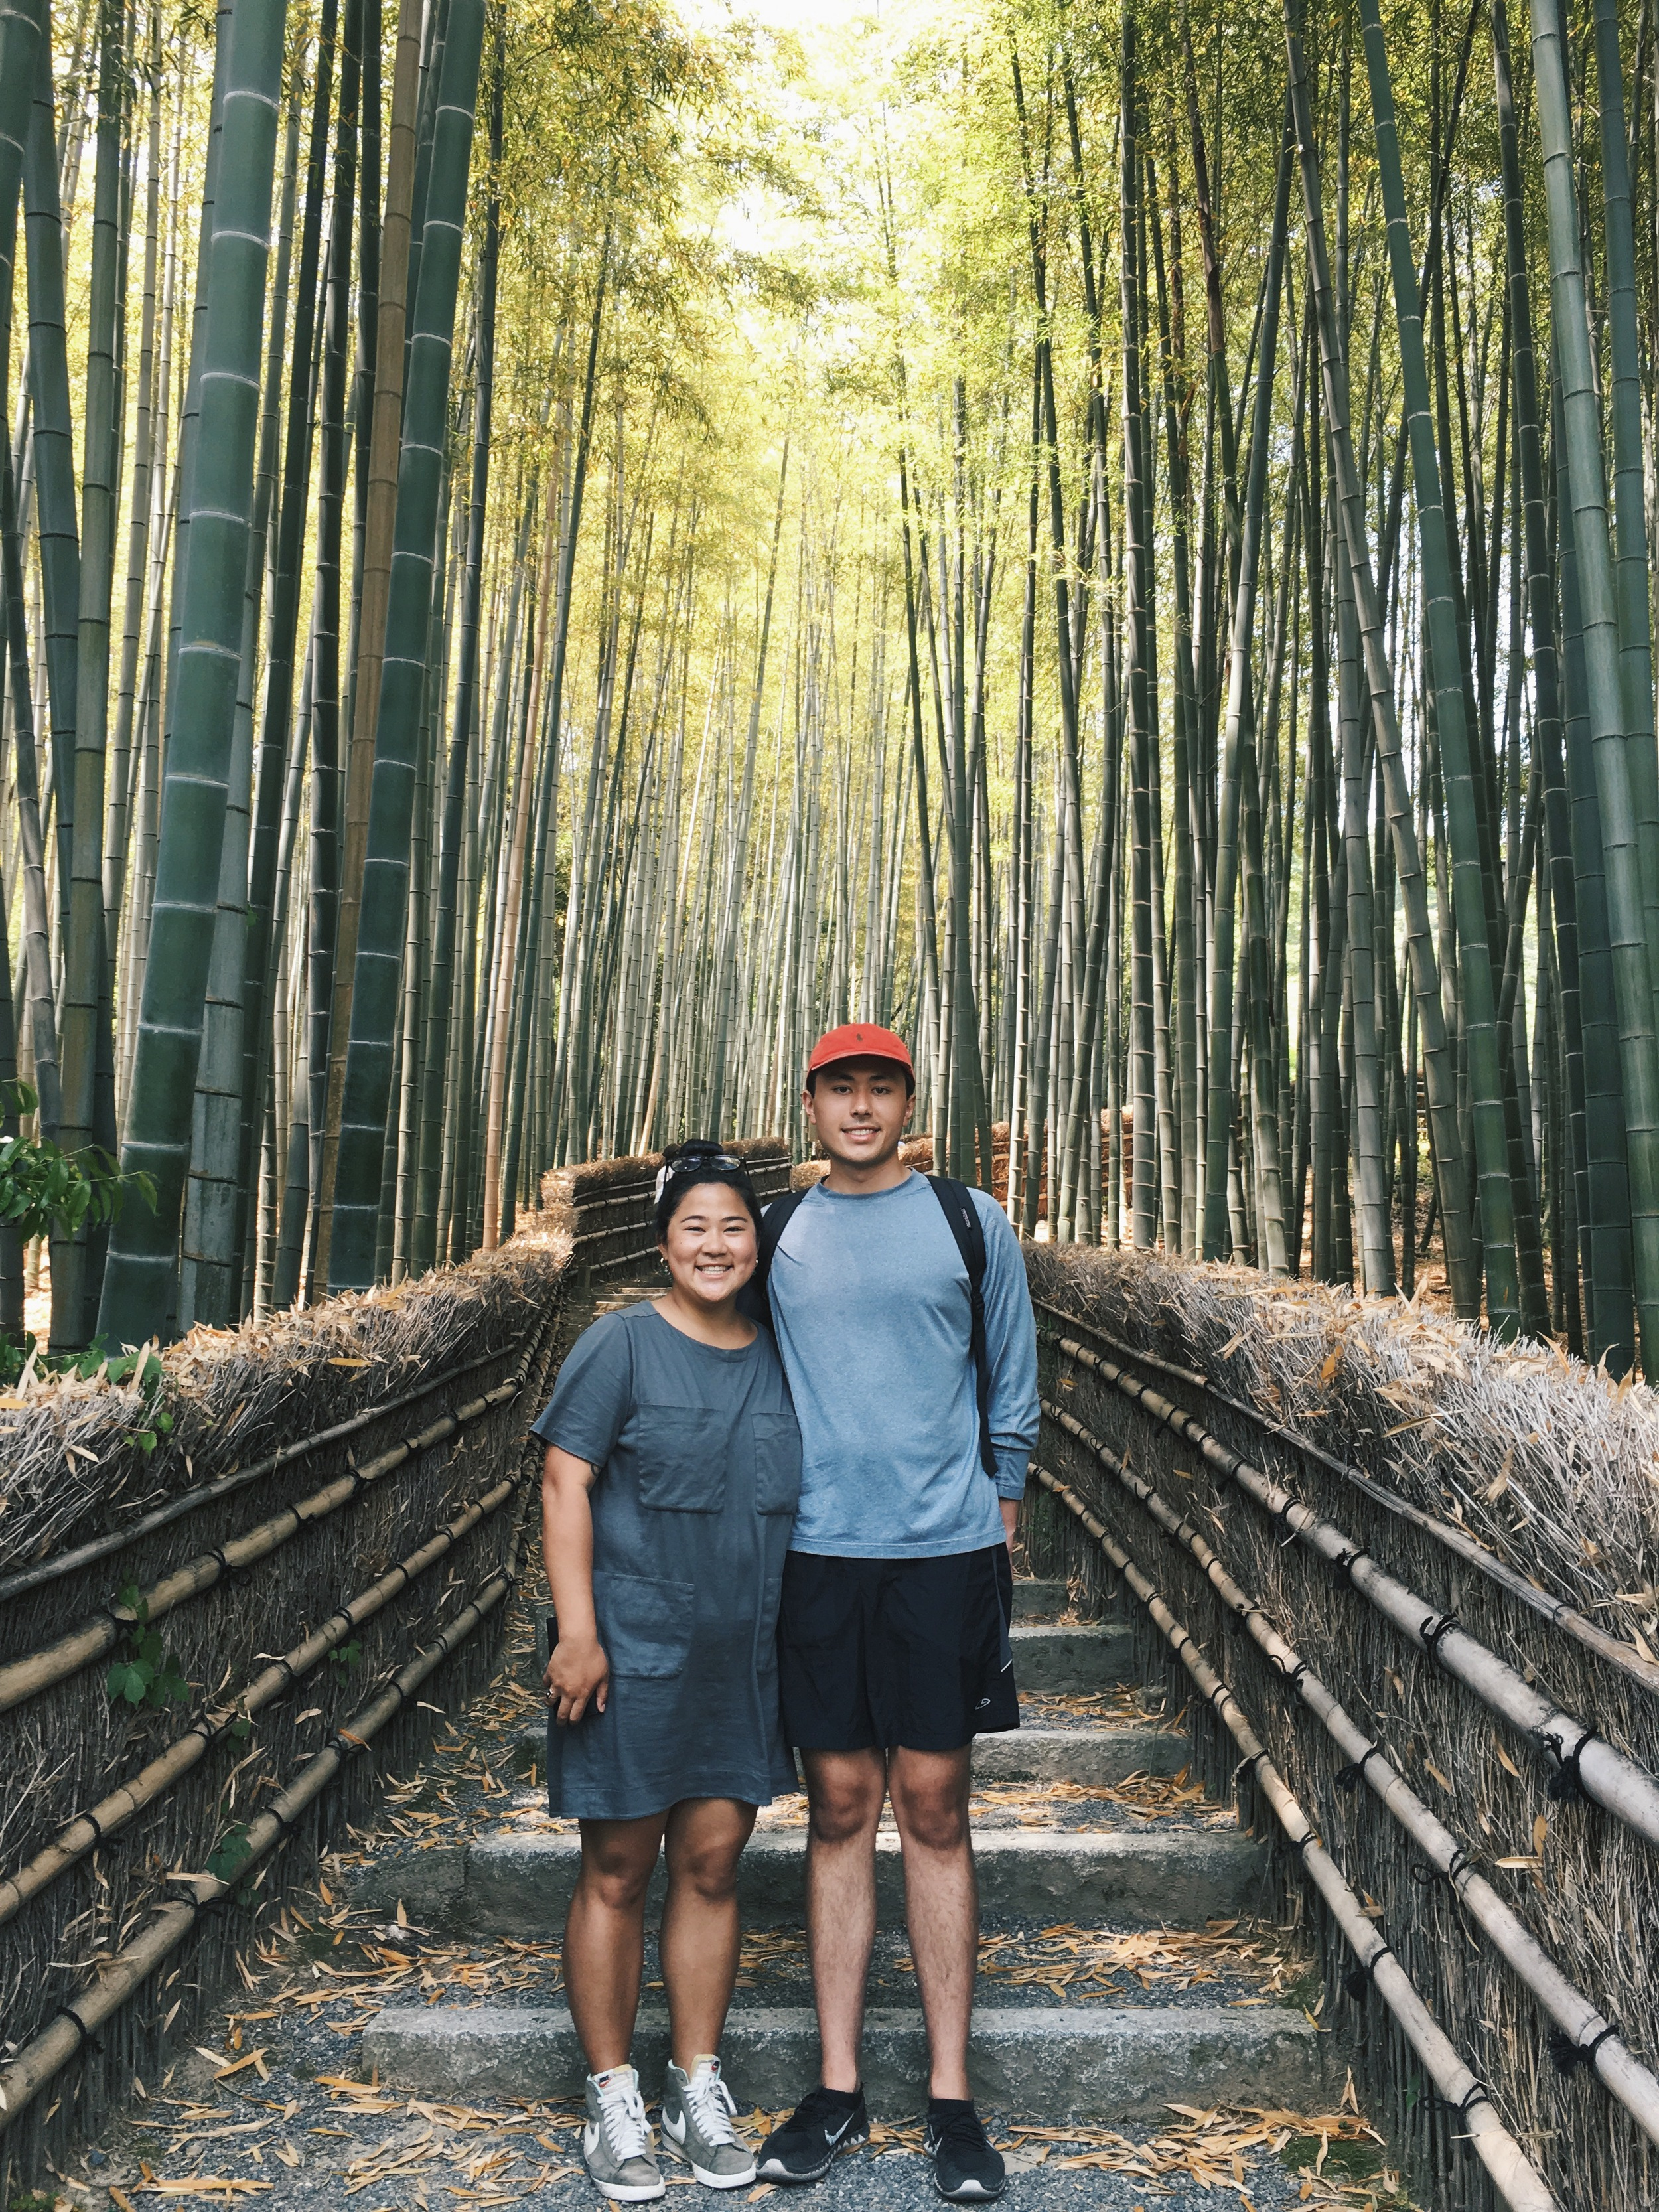 Bamboo Forest 🎍